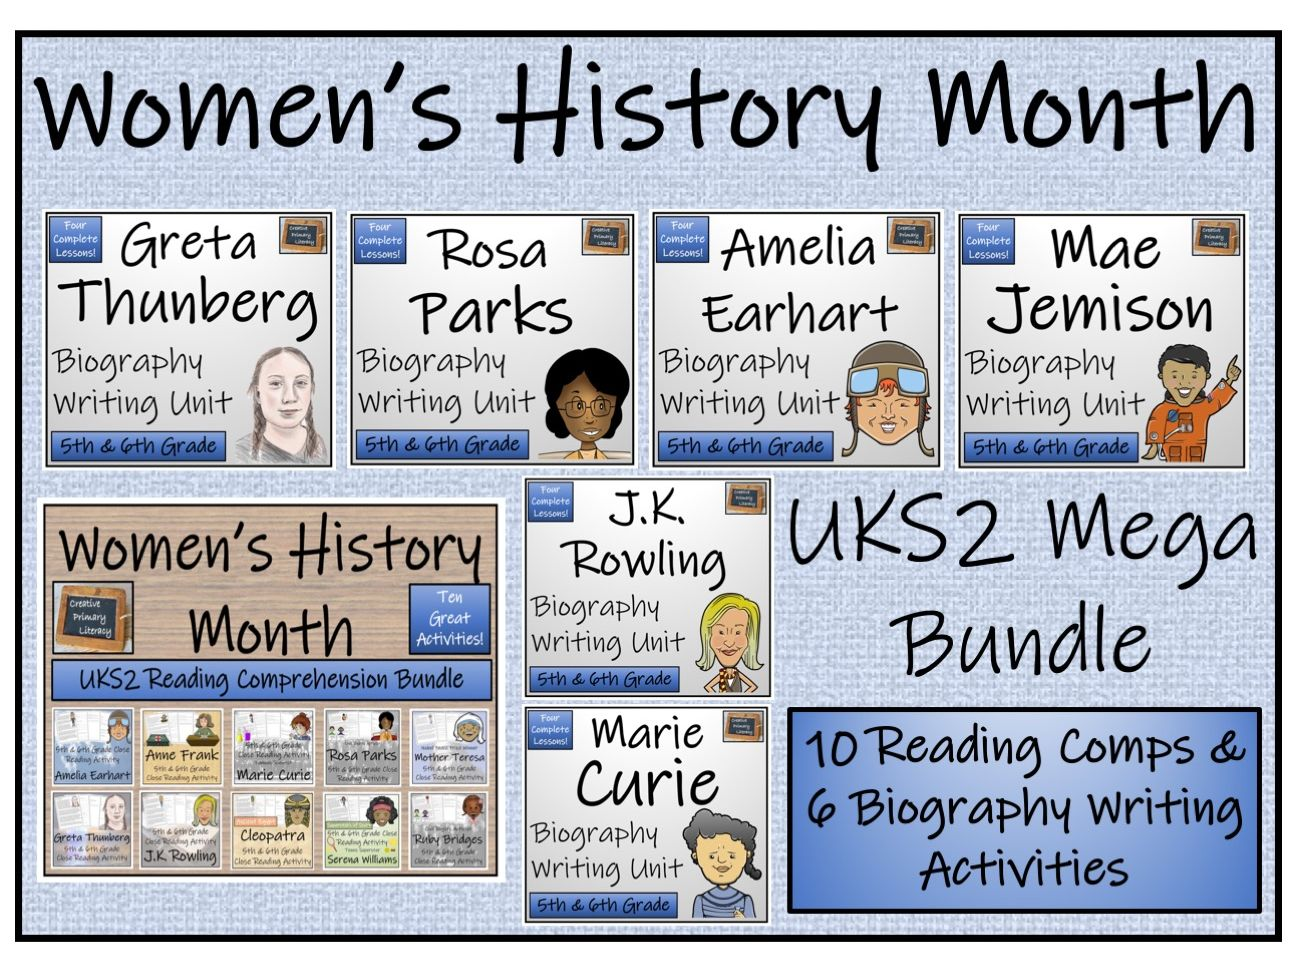 UKS2 Women's History Month Reading Comprehension & Biography Writing Mega Bundle